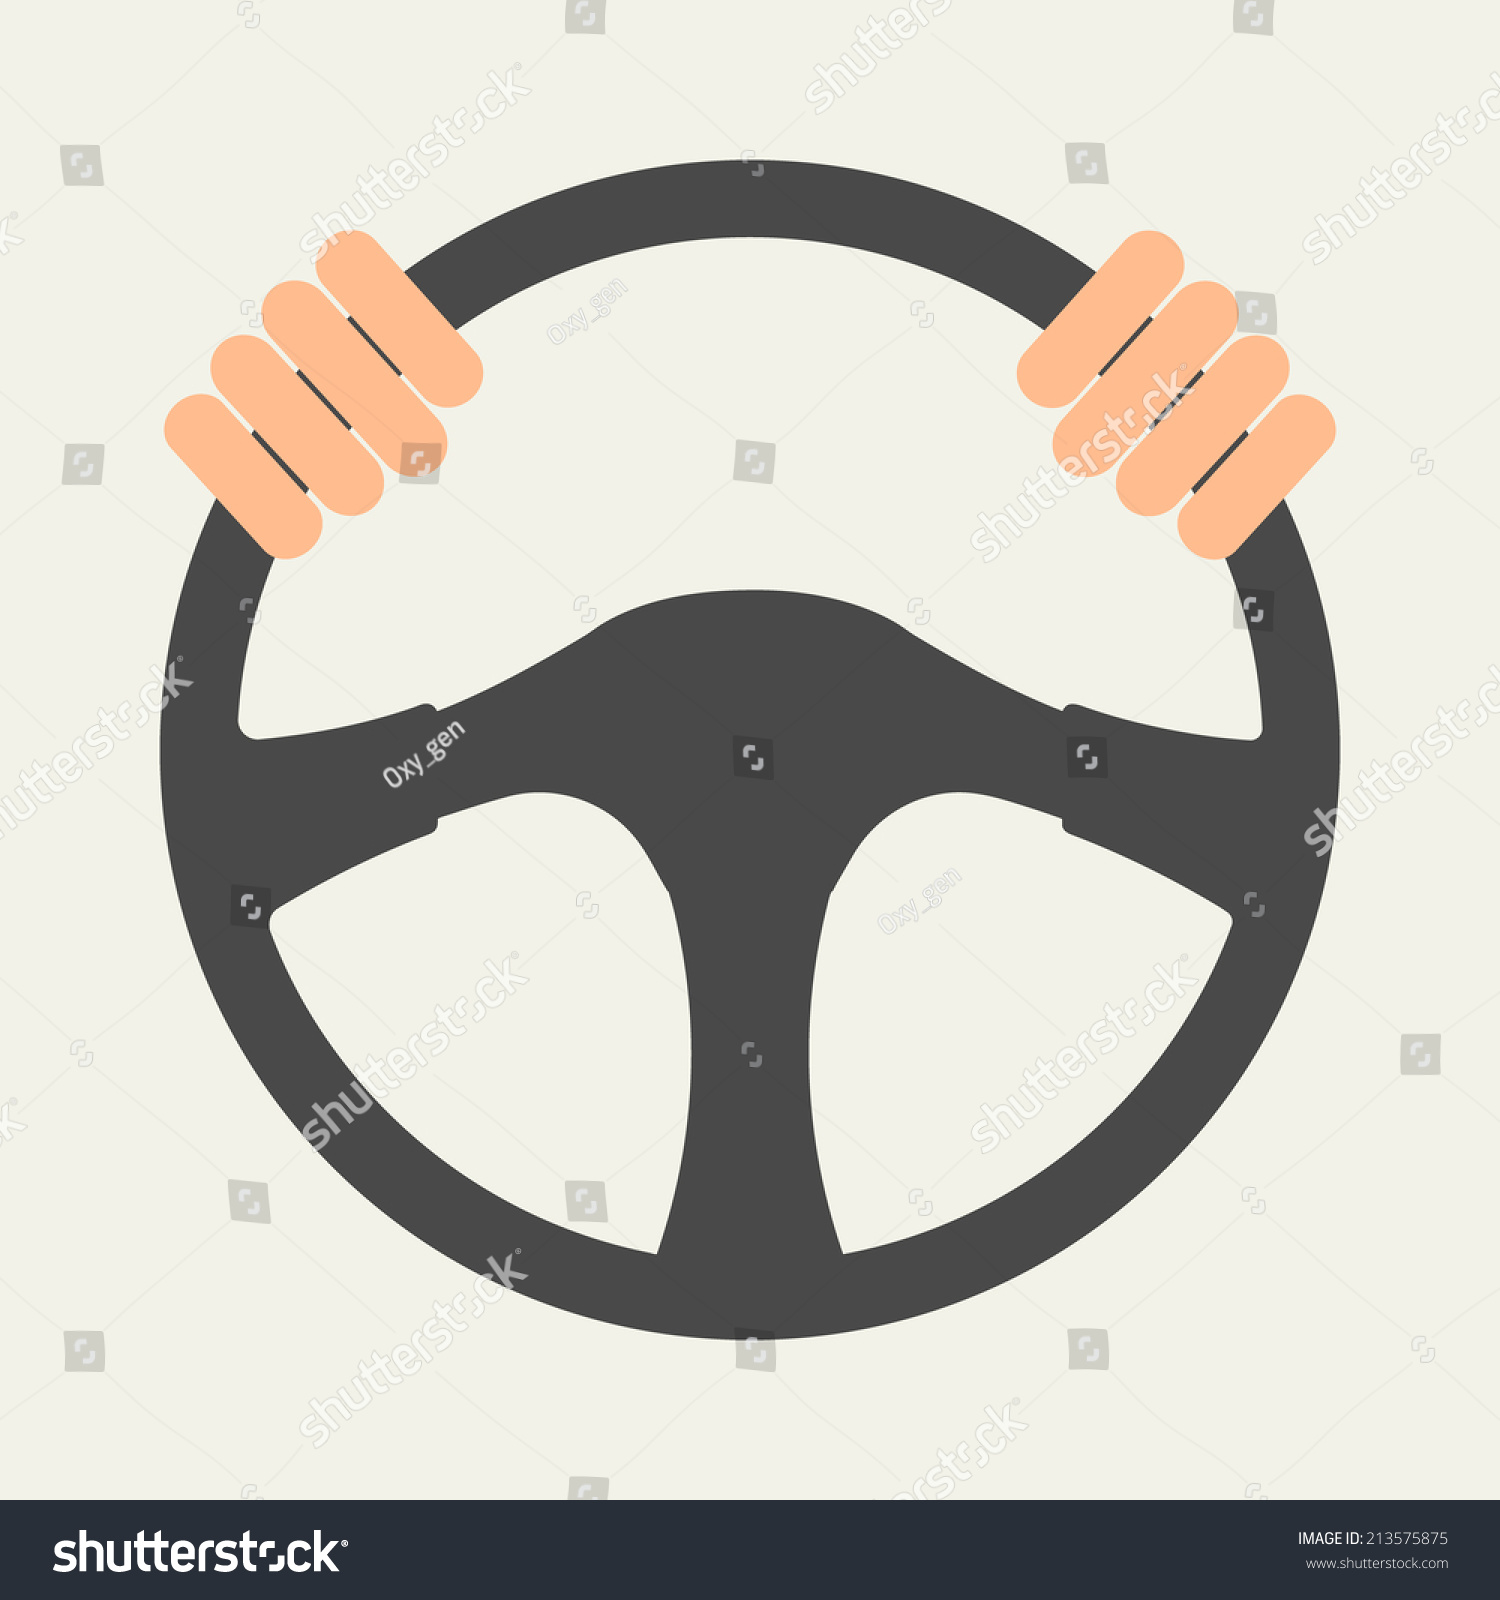 Hands Holding Steering Wheel Vector Illustration Stock ...